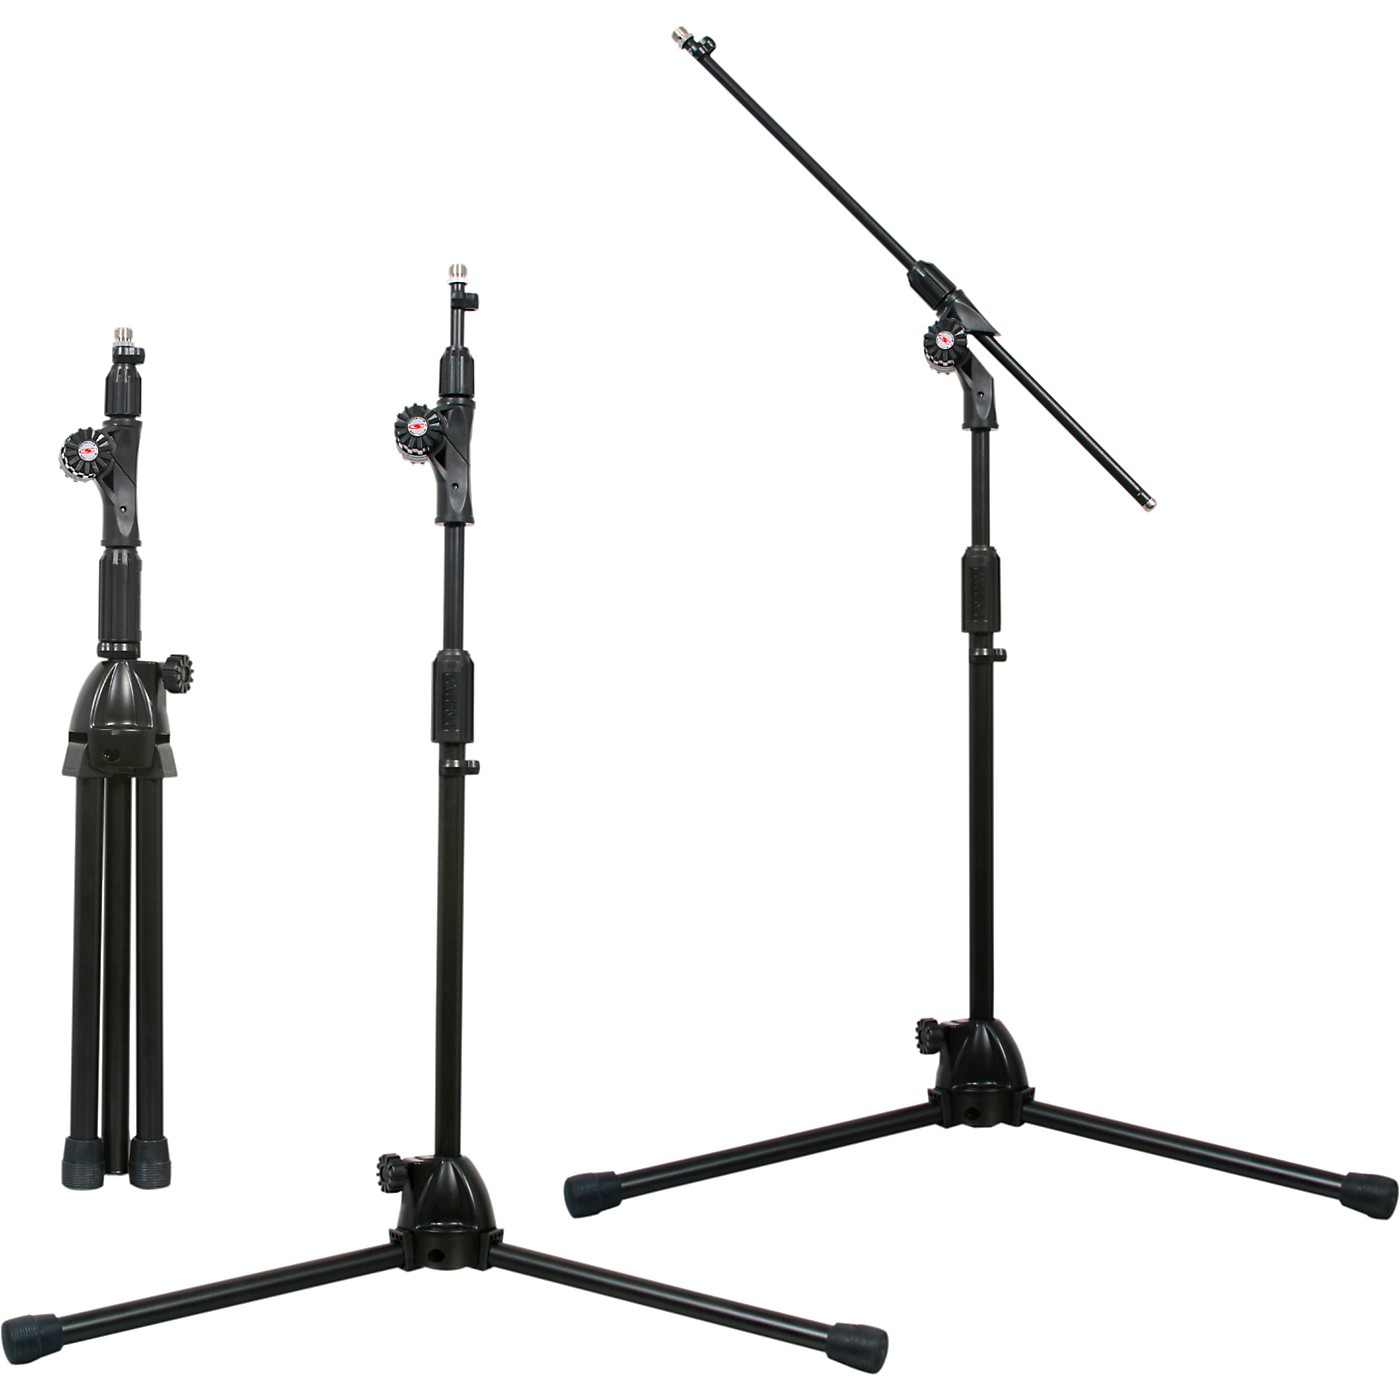 Galaxy Audio MST-C60 Standformer Microphone Stand thumbnail